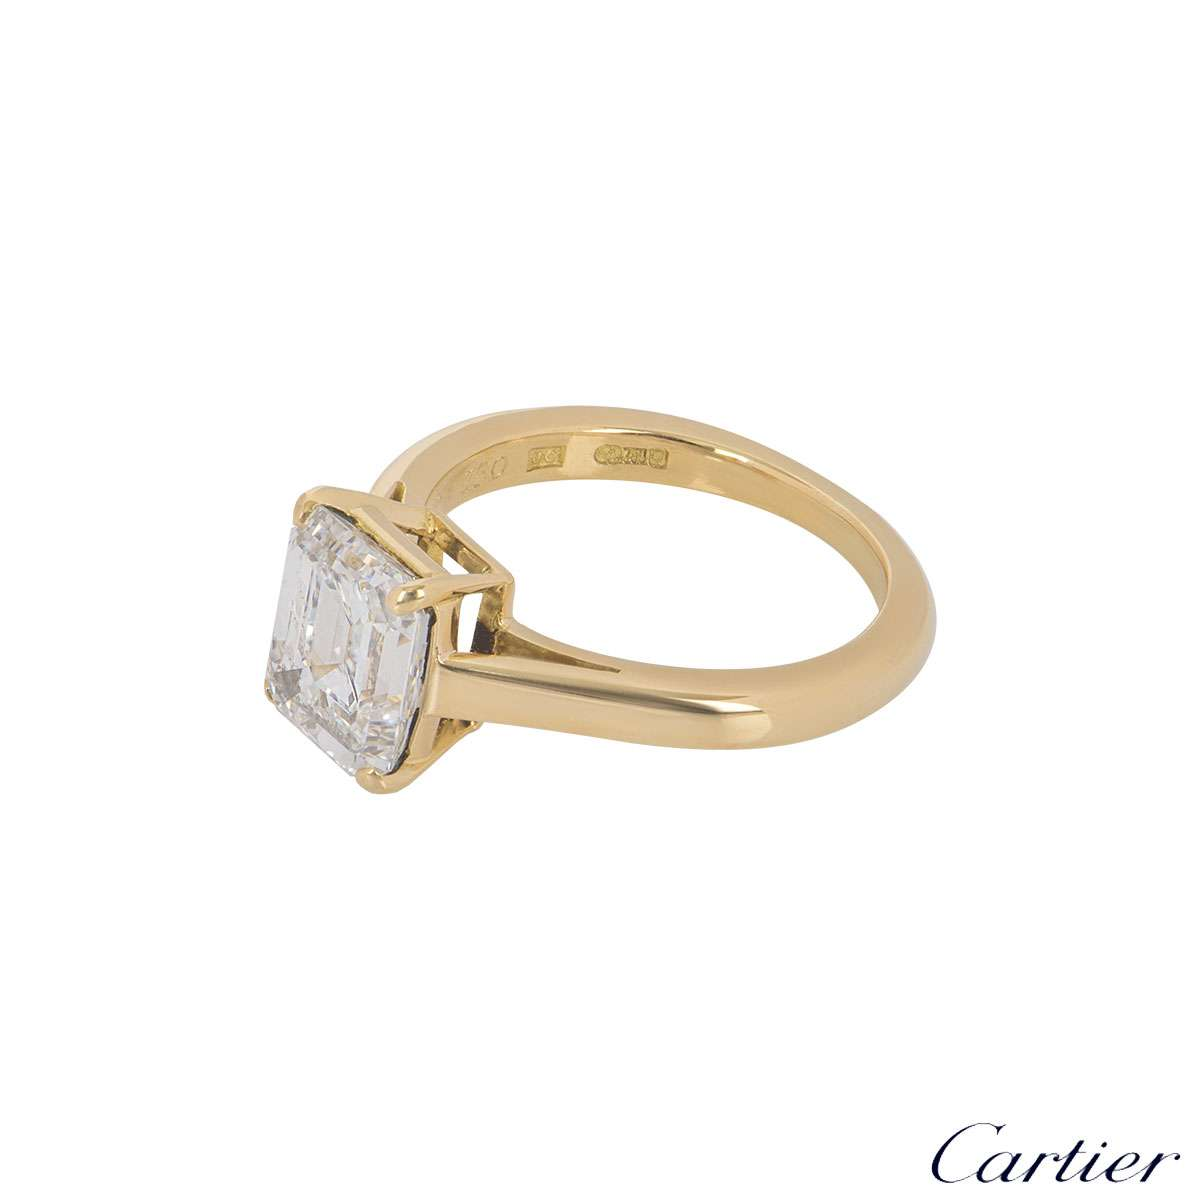 Cartier Yellow Gold Diamond 1895 Solitaire Ring 1.84ct E/VS1